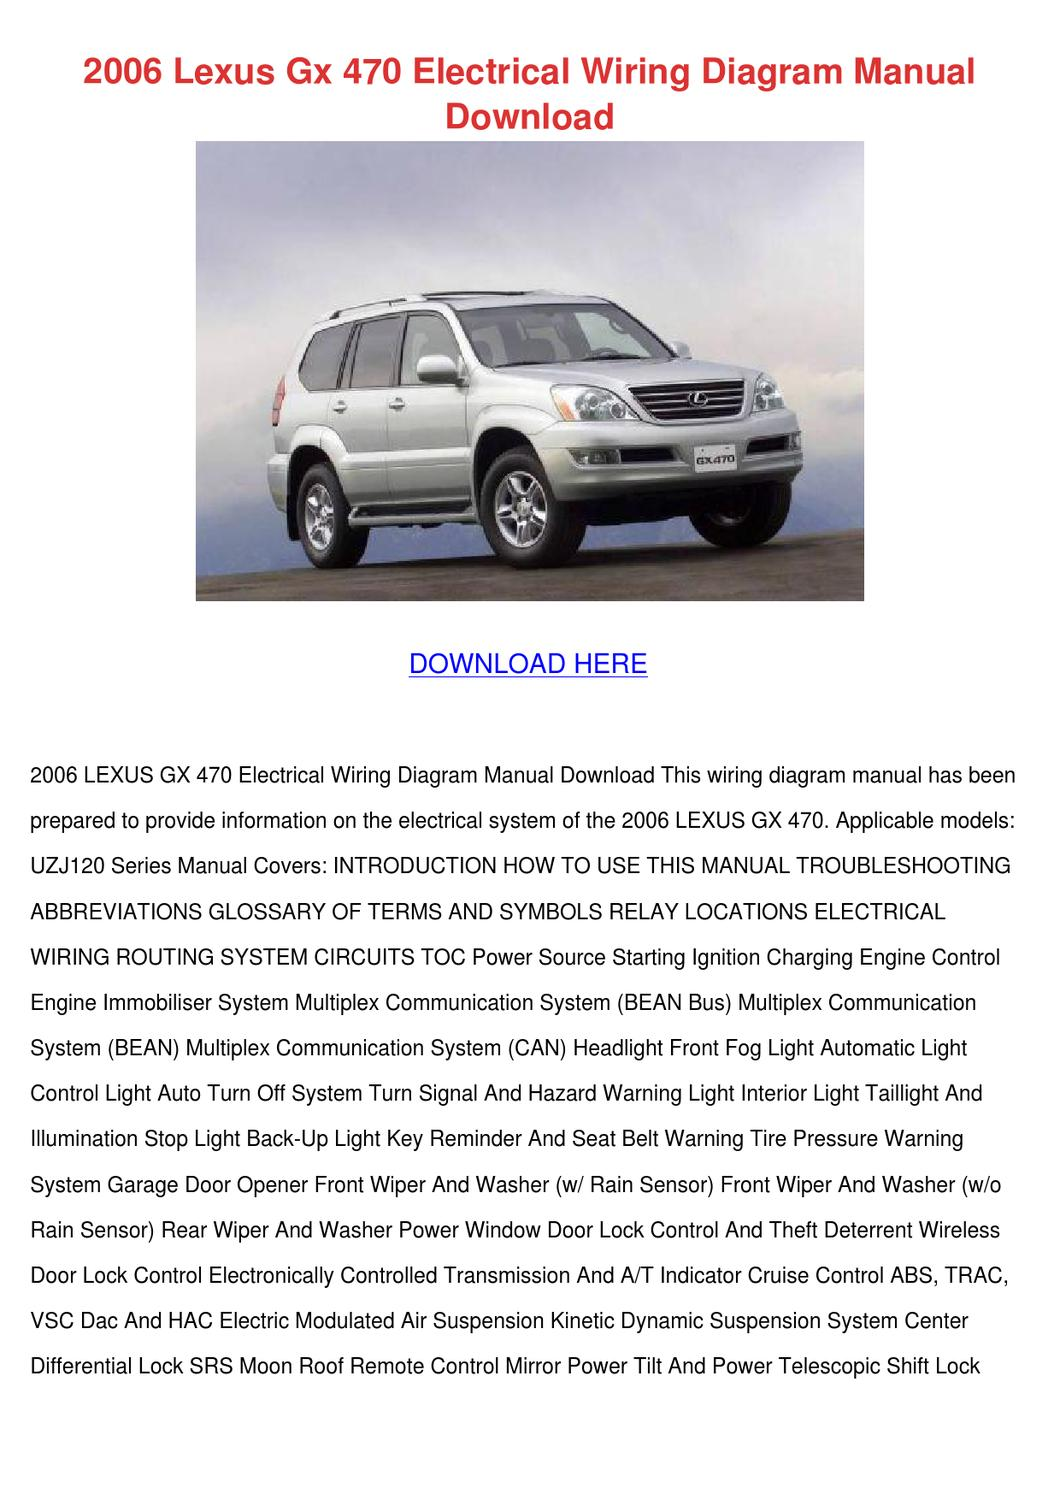 2006 Lexus Gx 470 Electrical Wiring Diagram M By